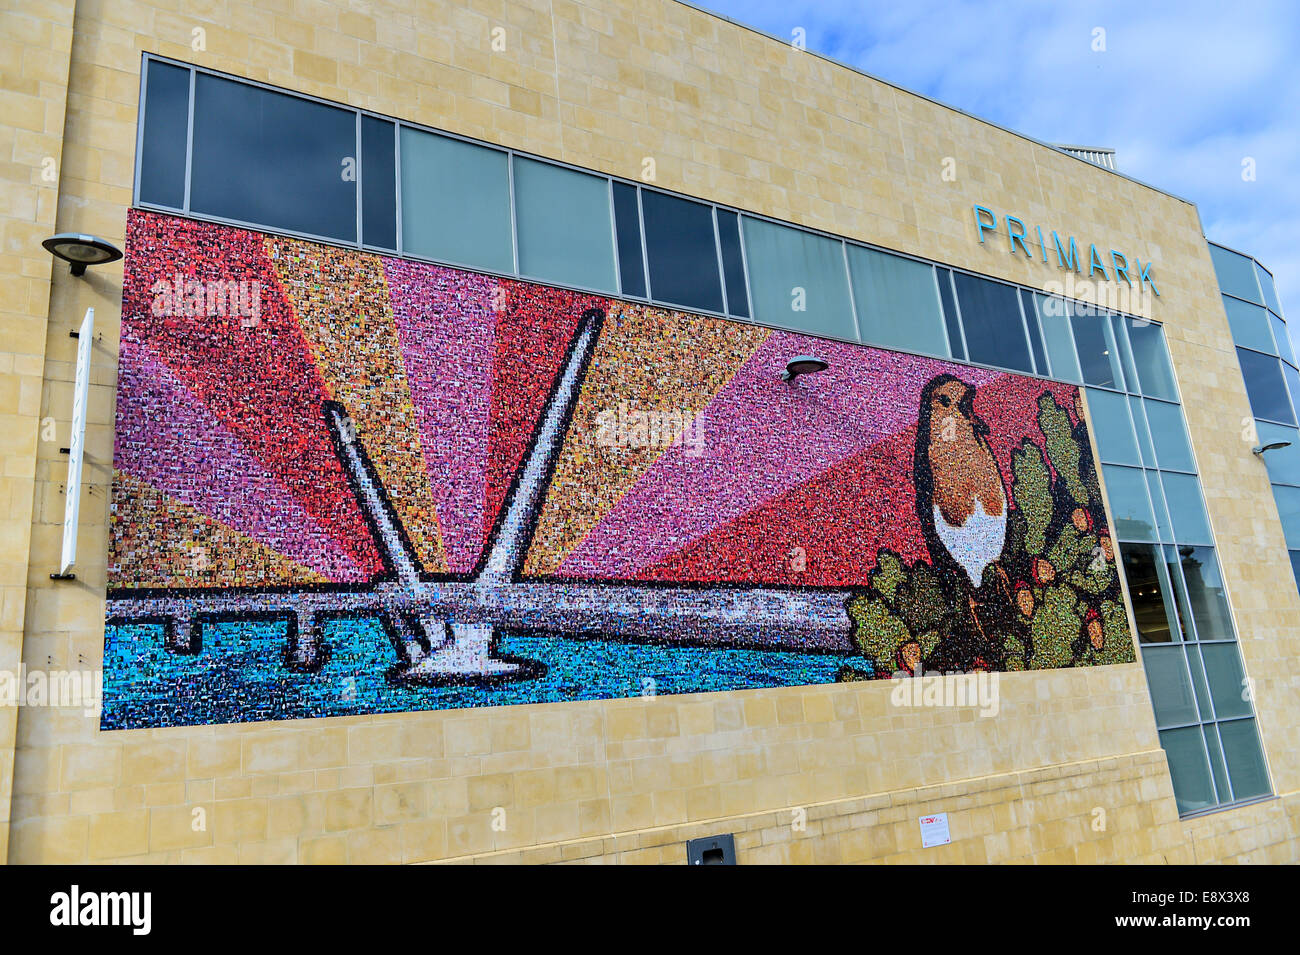 Stock Photo - Mosaic mural on side wall  of Primark shop, Derry, Londonderry, Northern Ireland. ©George Sweeney - Stock Image